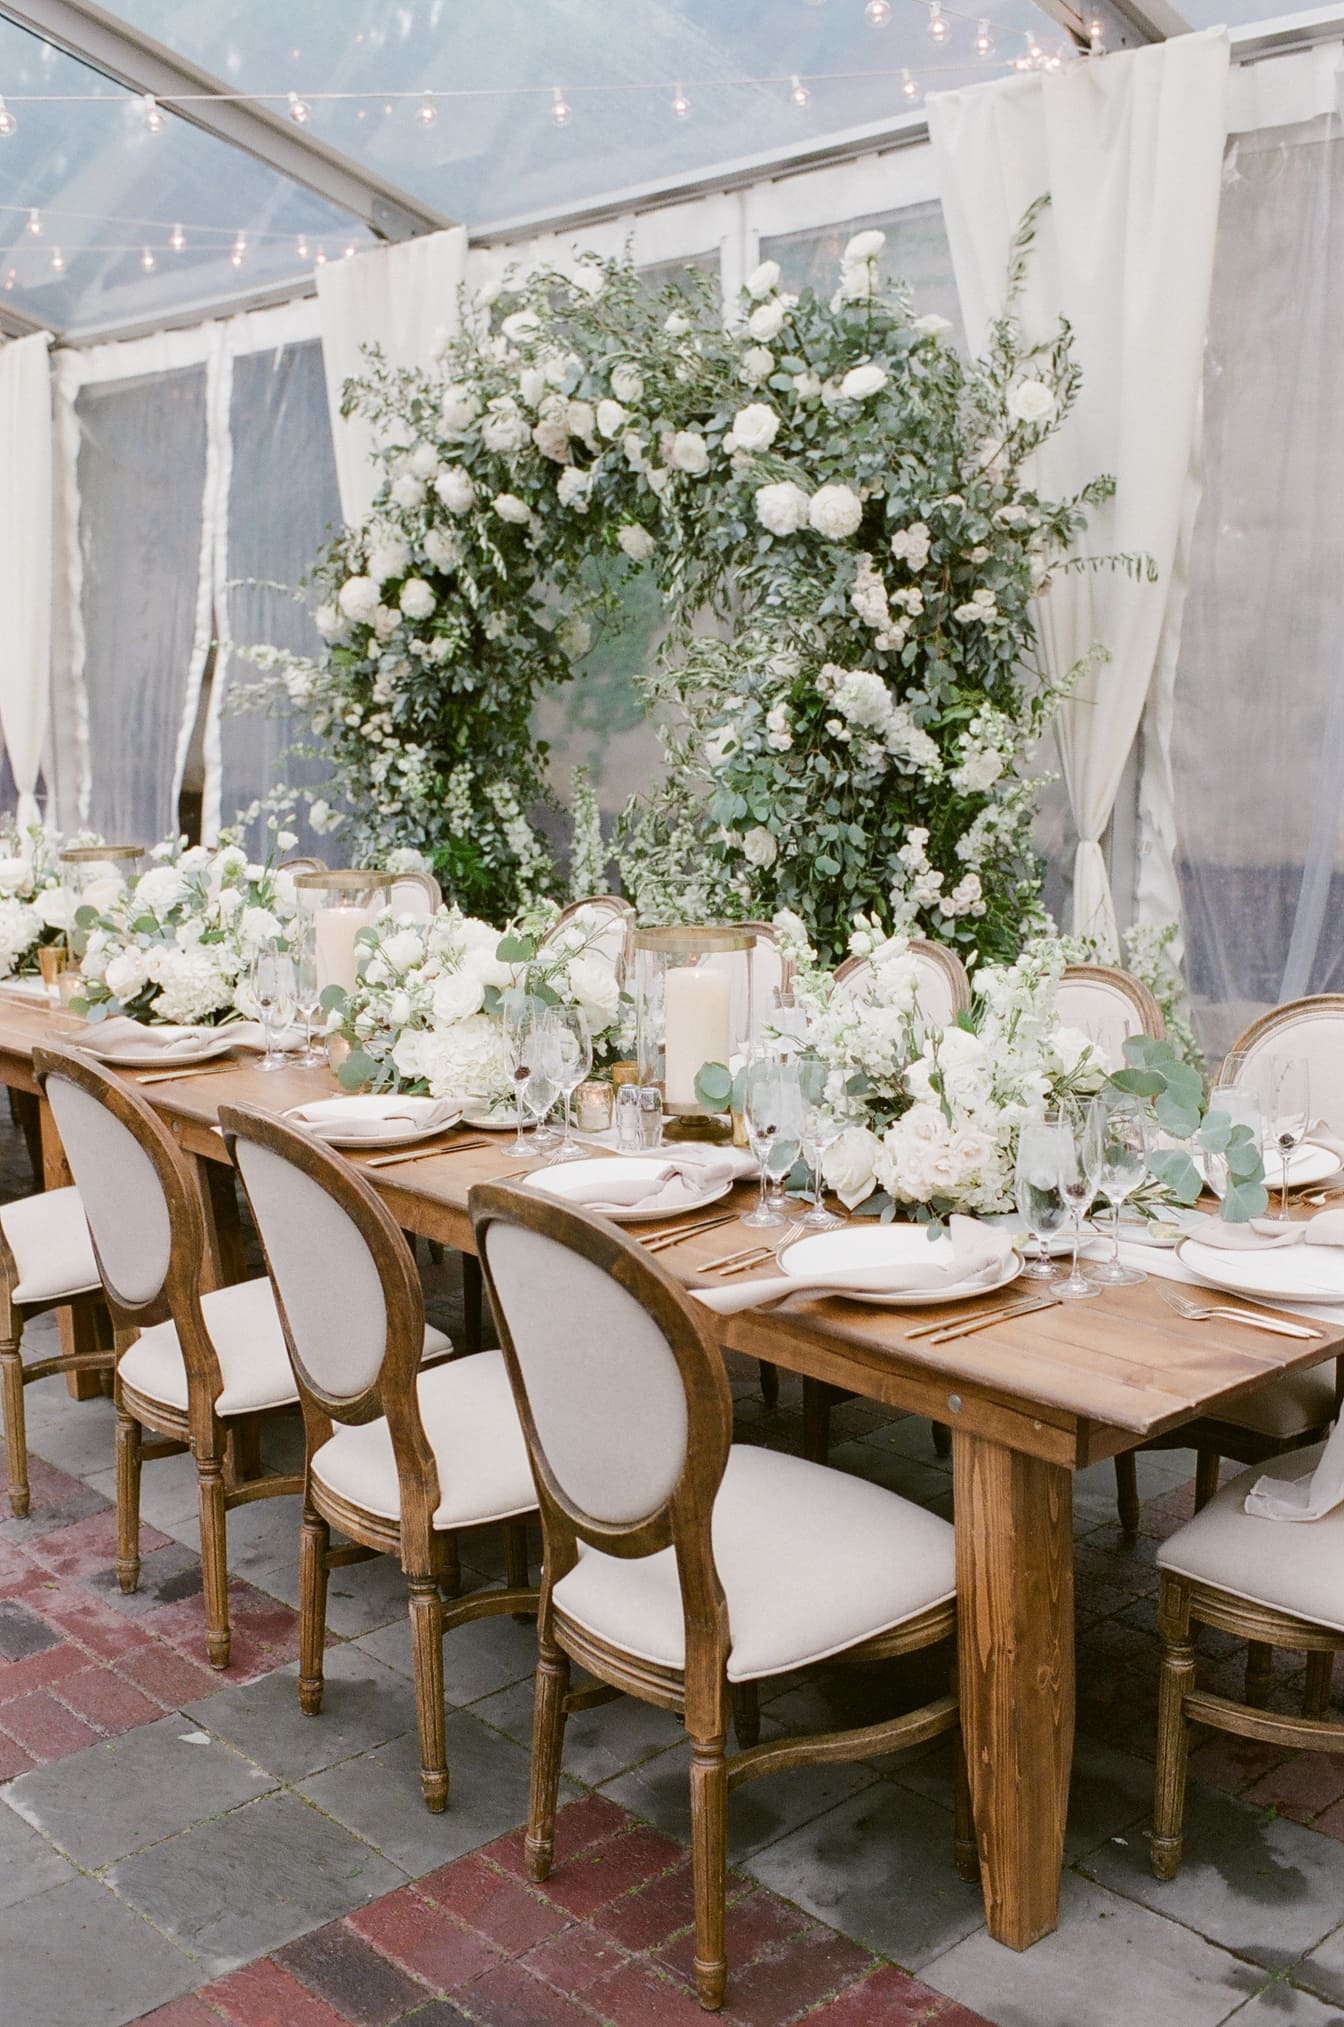 Floral arch decor in whites and greens